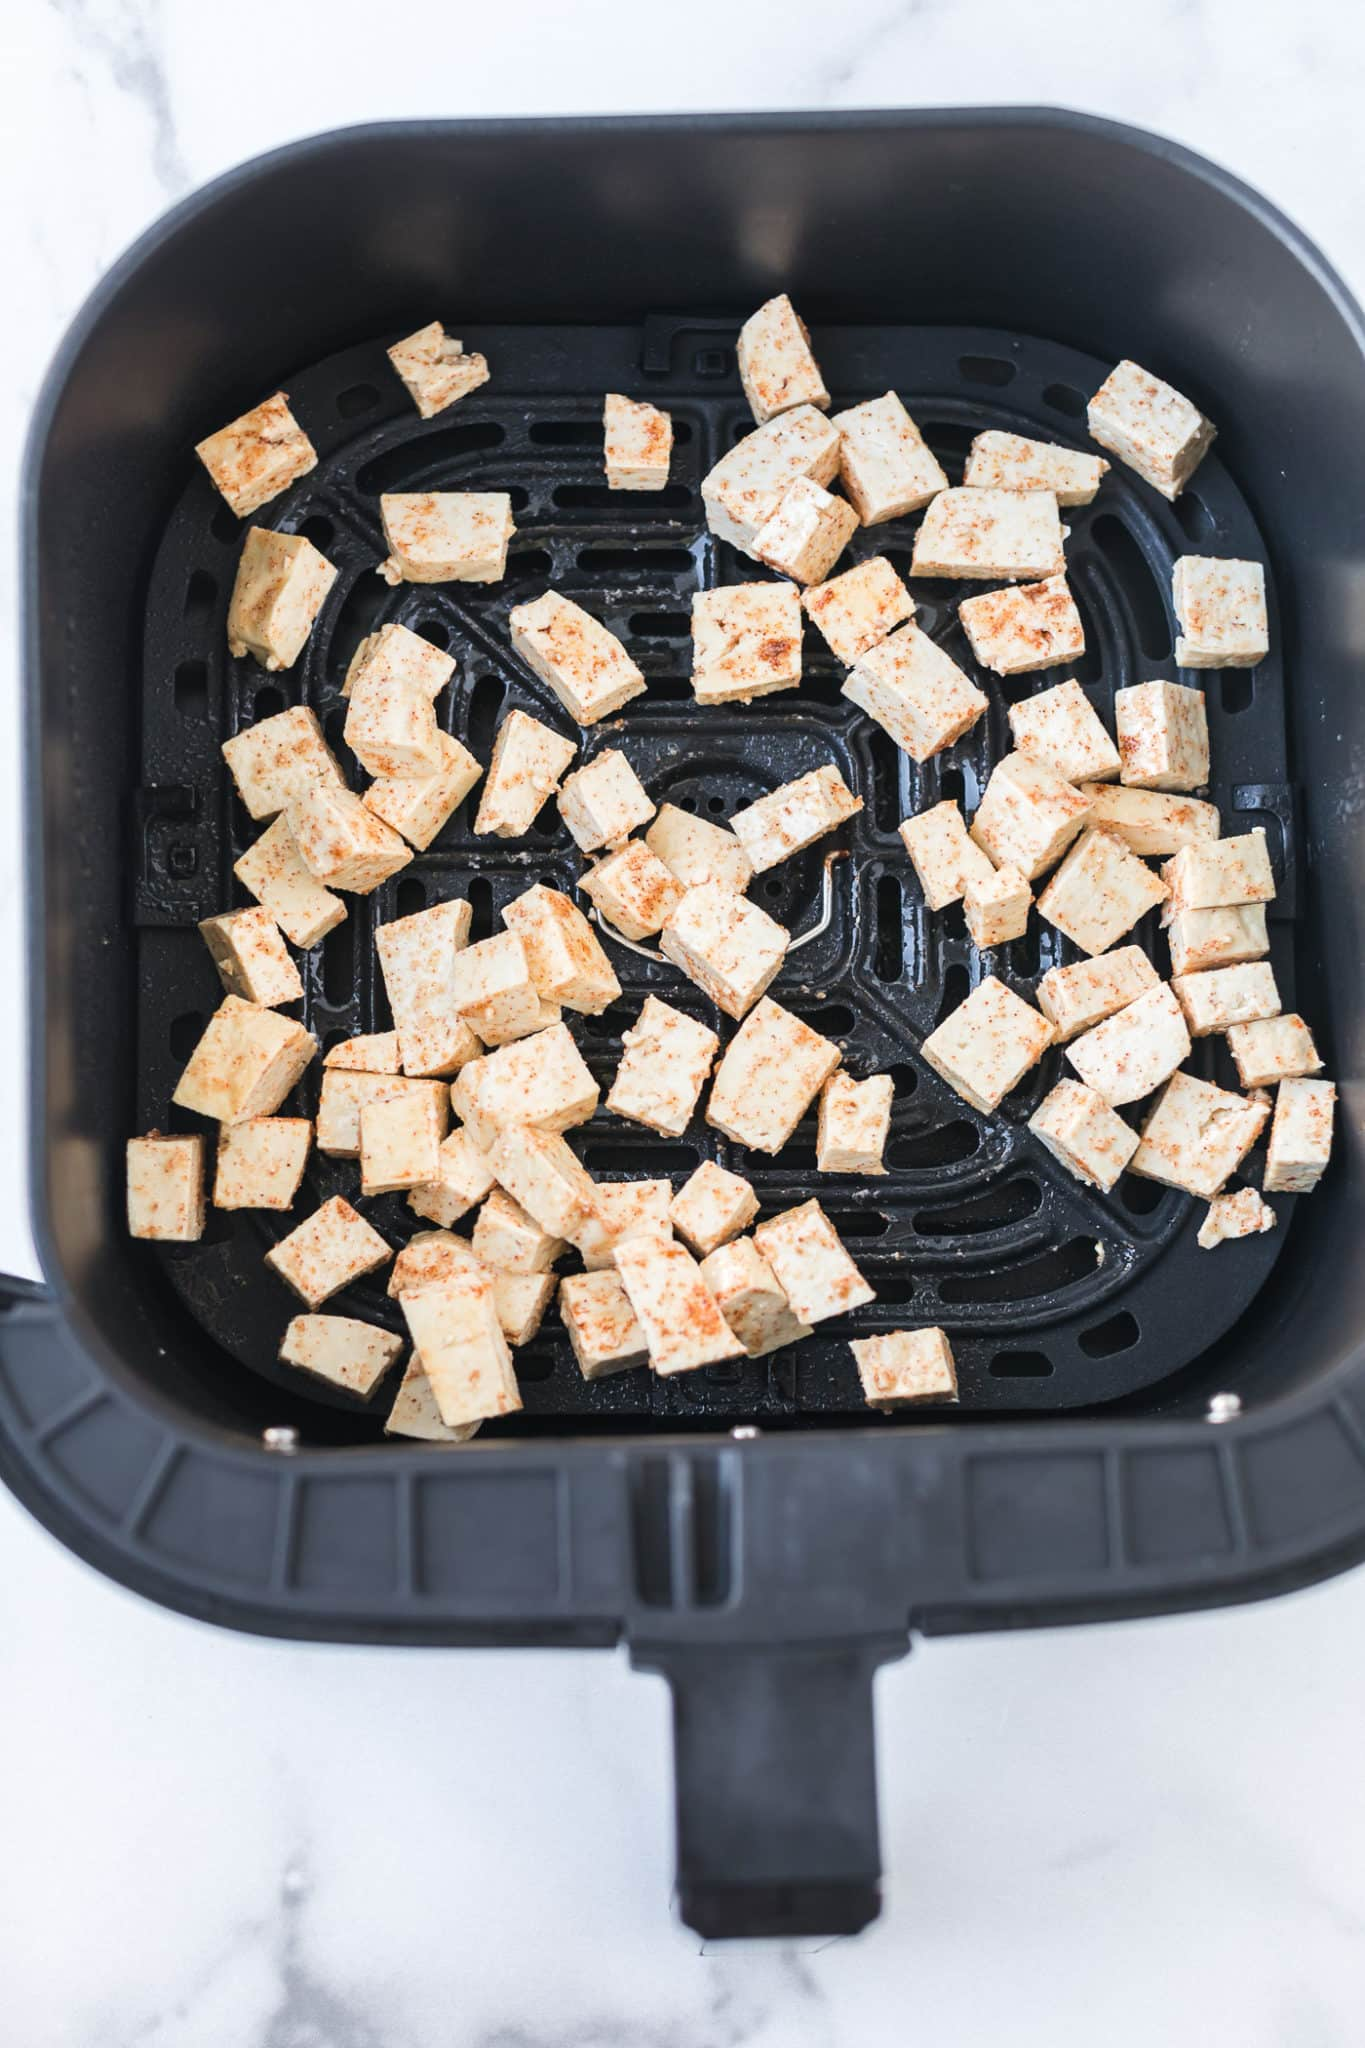 seasoned tofu in the basket of an air fryer ready to be baked